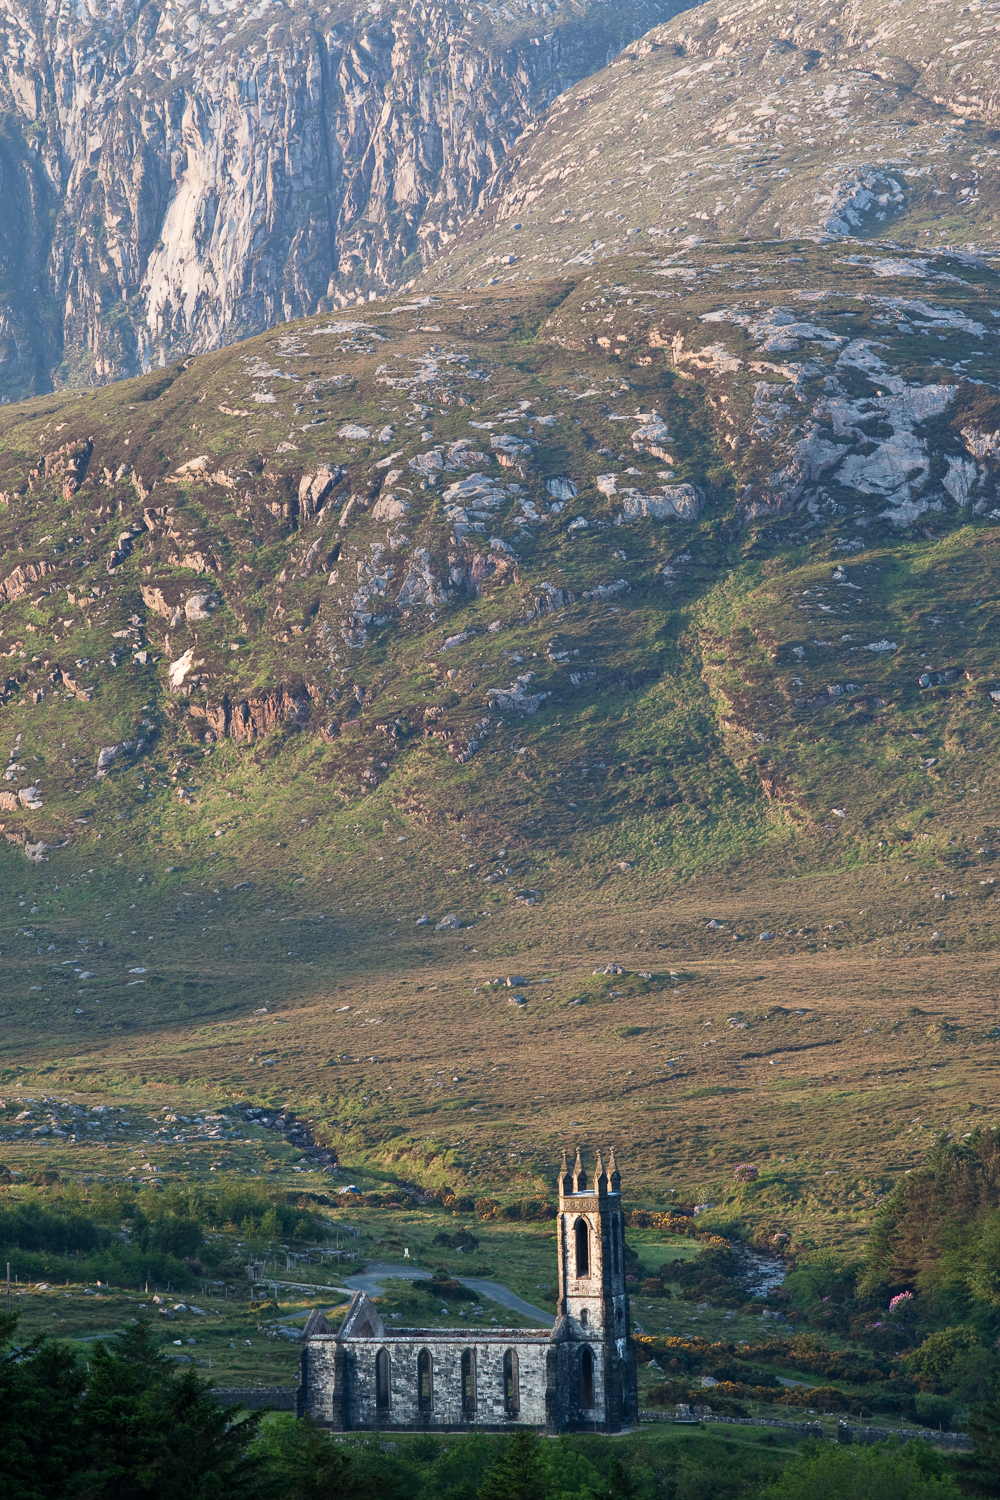 Dunlewy Church, Posion Glen, Donegal